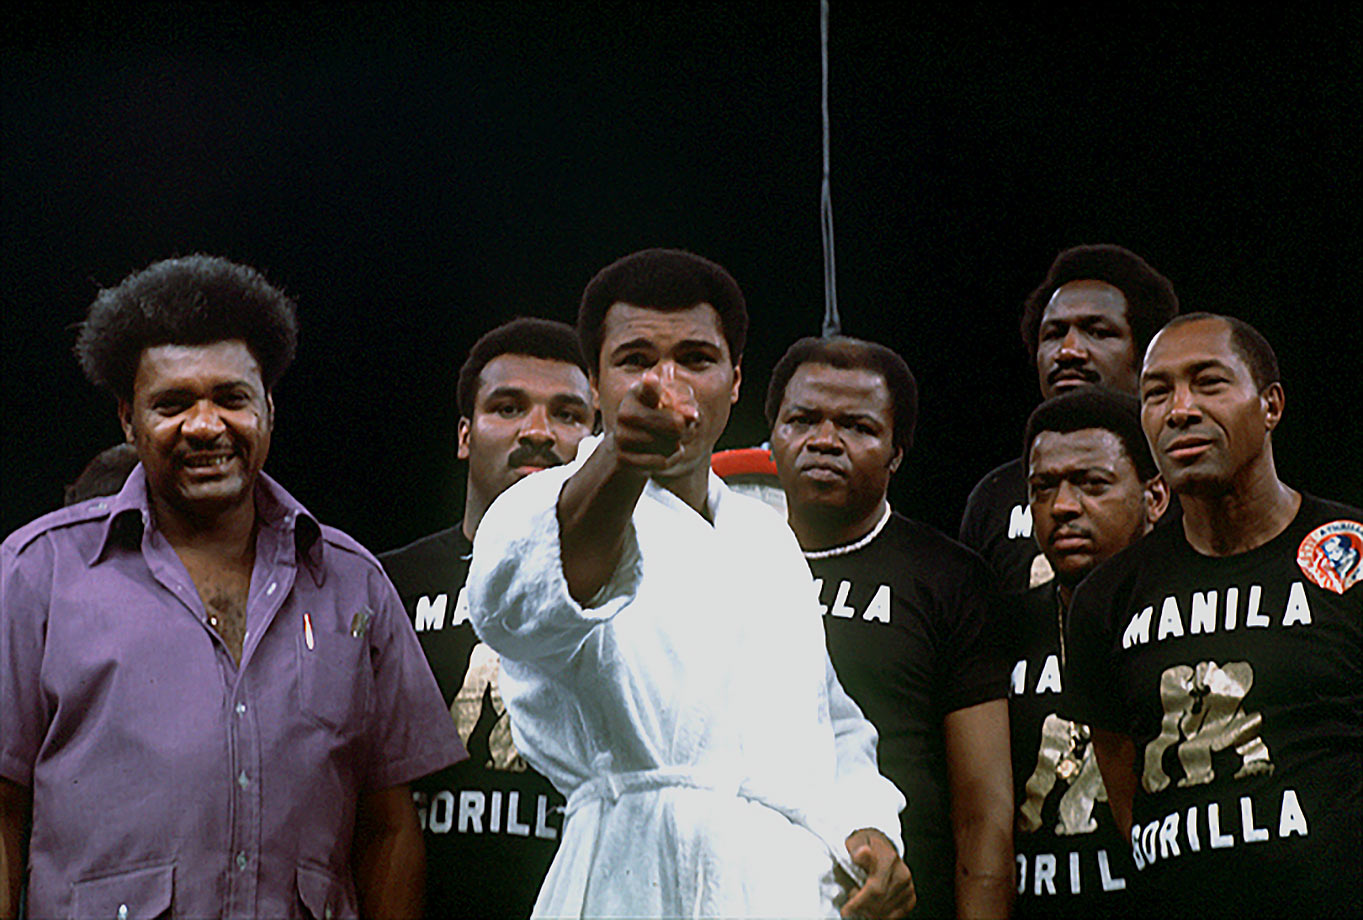 Ali points at the camera with Don King and his training staff behind him before the weigh-in for the Thrilla in Manila in October 1975. Philippine president Ferdinand Marcos offered to sponsor the bout and hold it in Metro Manila to divert attention from the turmoil in the country that had forced the imposition of martial law in 1972.